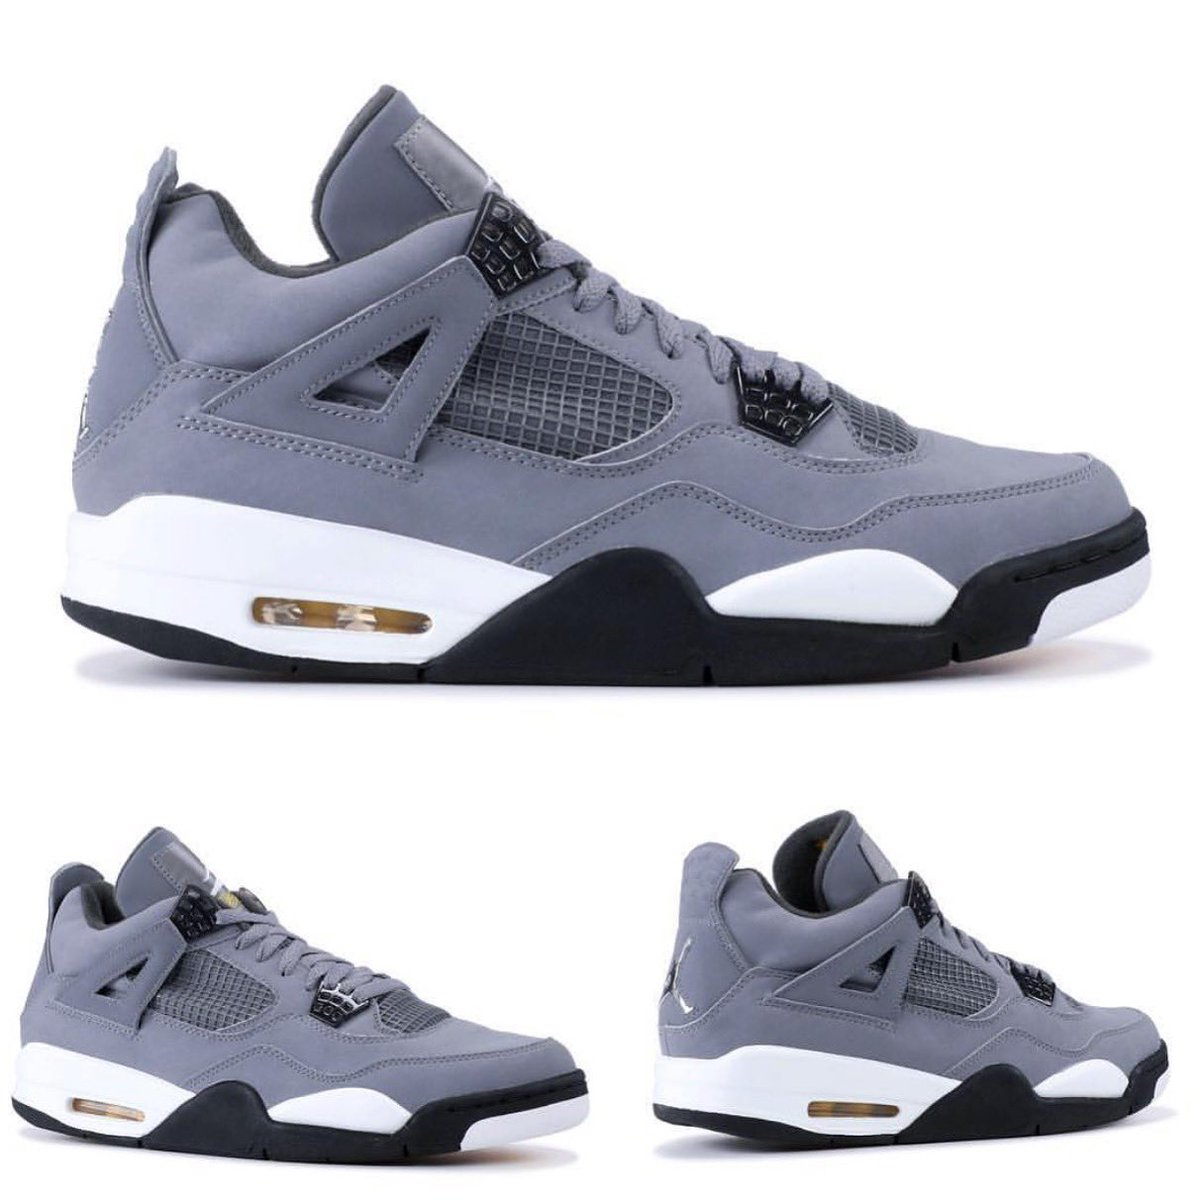 release date: 1259c 37a3b 2019 Air Jordan Retro 4 Cool Grey Chrome-Dark Charcoal 308497-007 August  3rd, 2019     190  MrUnloved1spic.twitter.com IINXCbHUK2